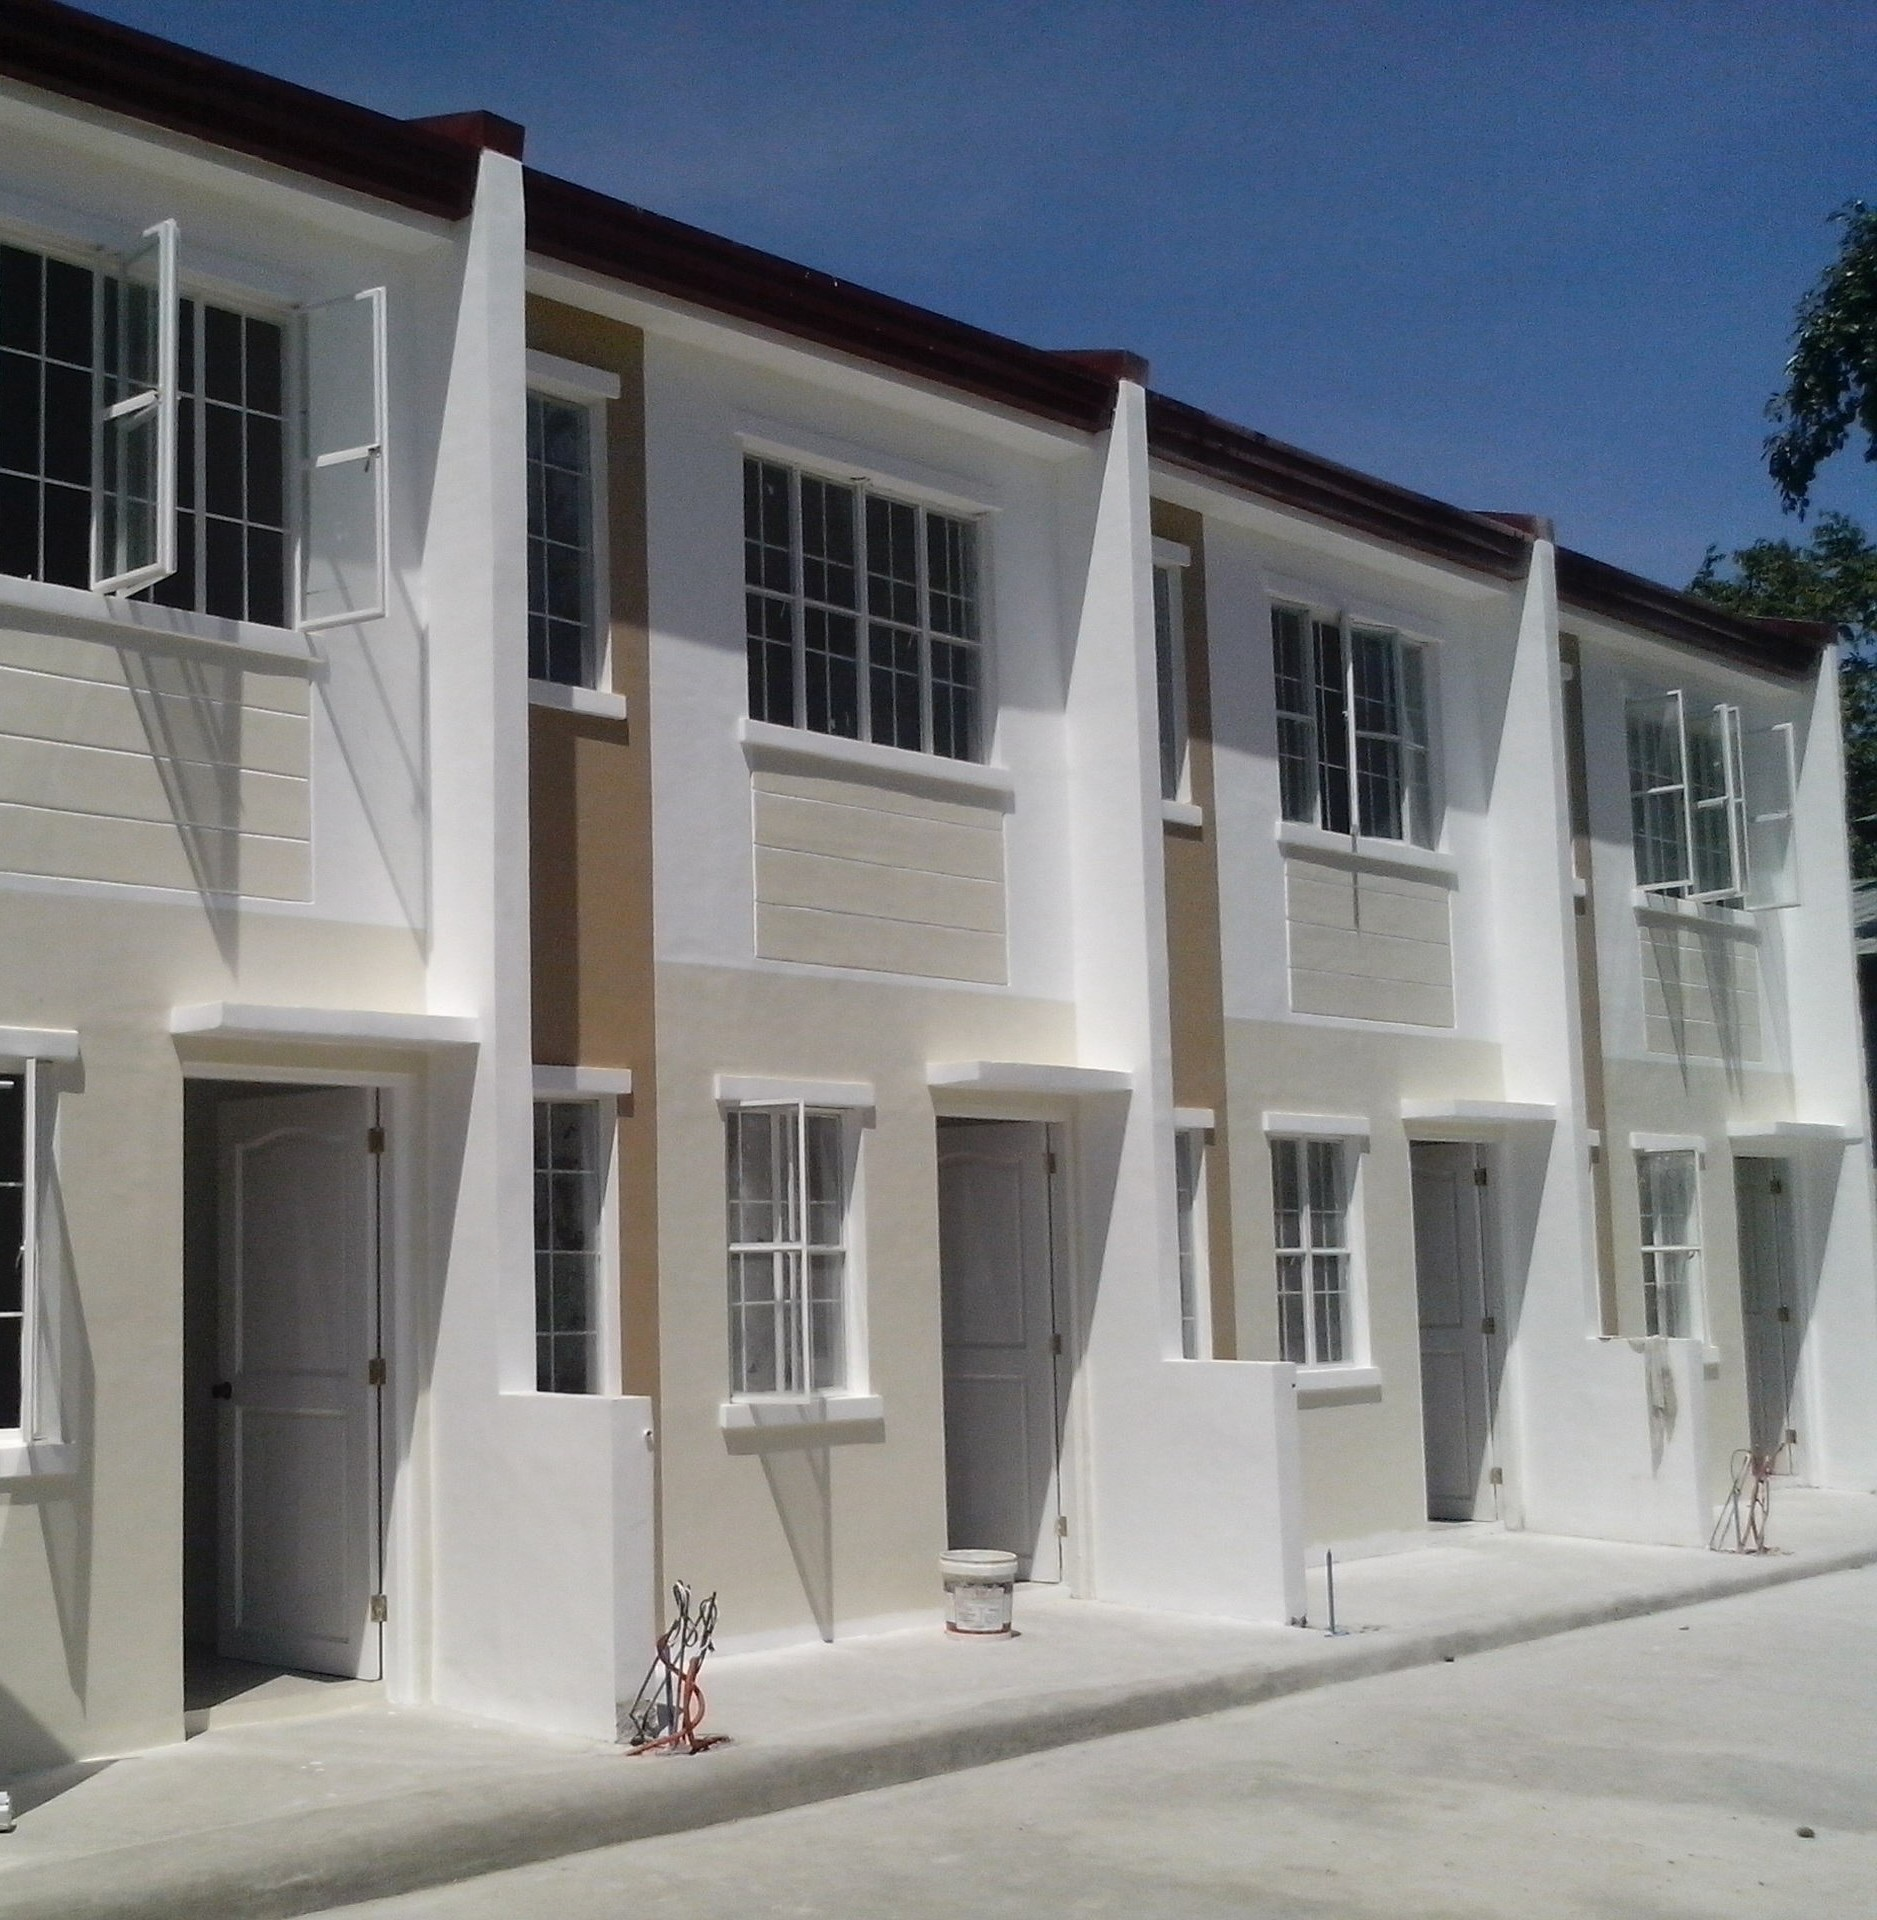 rent to own caloocan 09235564517 rico navarro